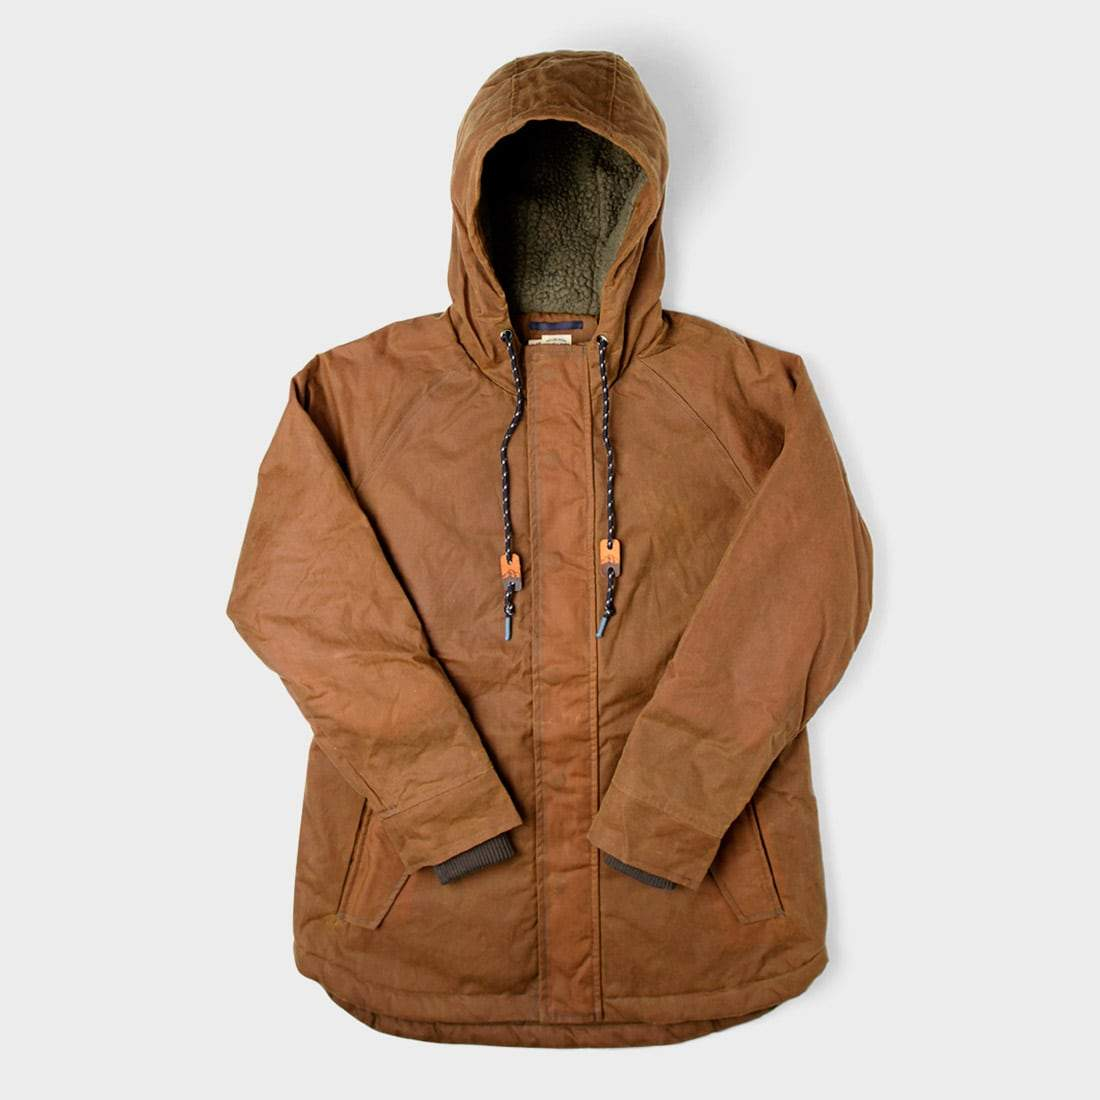 Bridge & Burn Women's Sequoia Jacket Brown